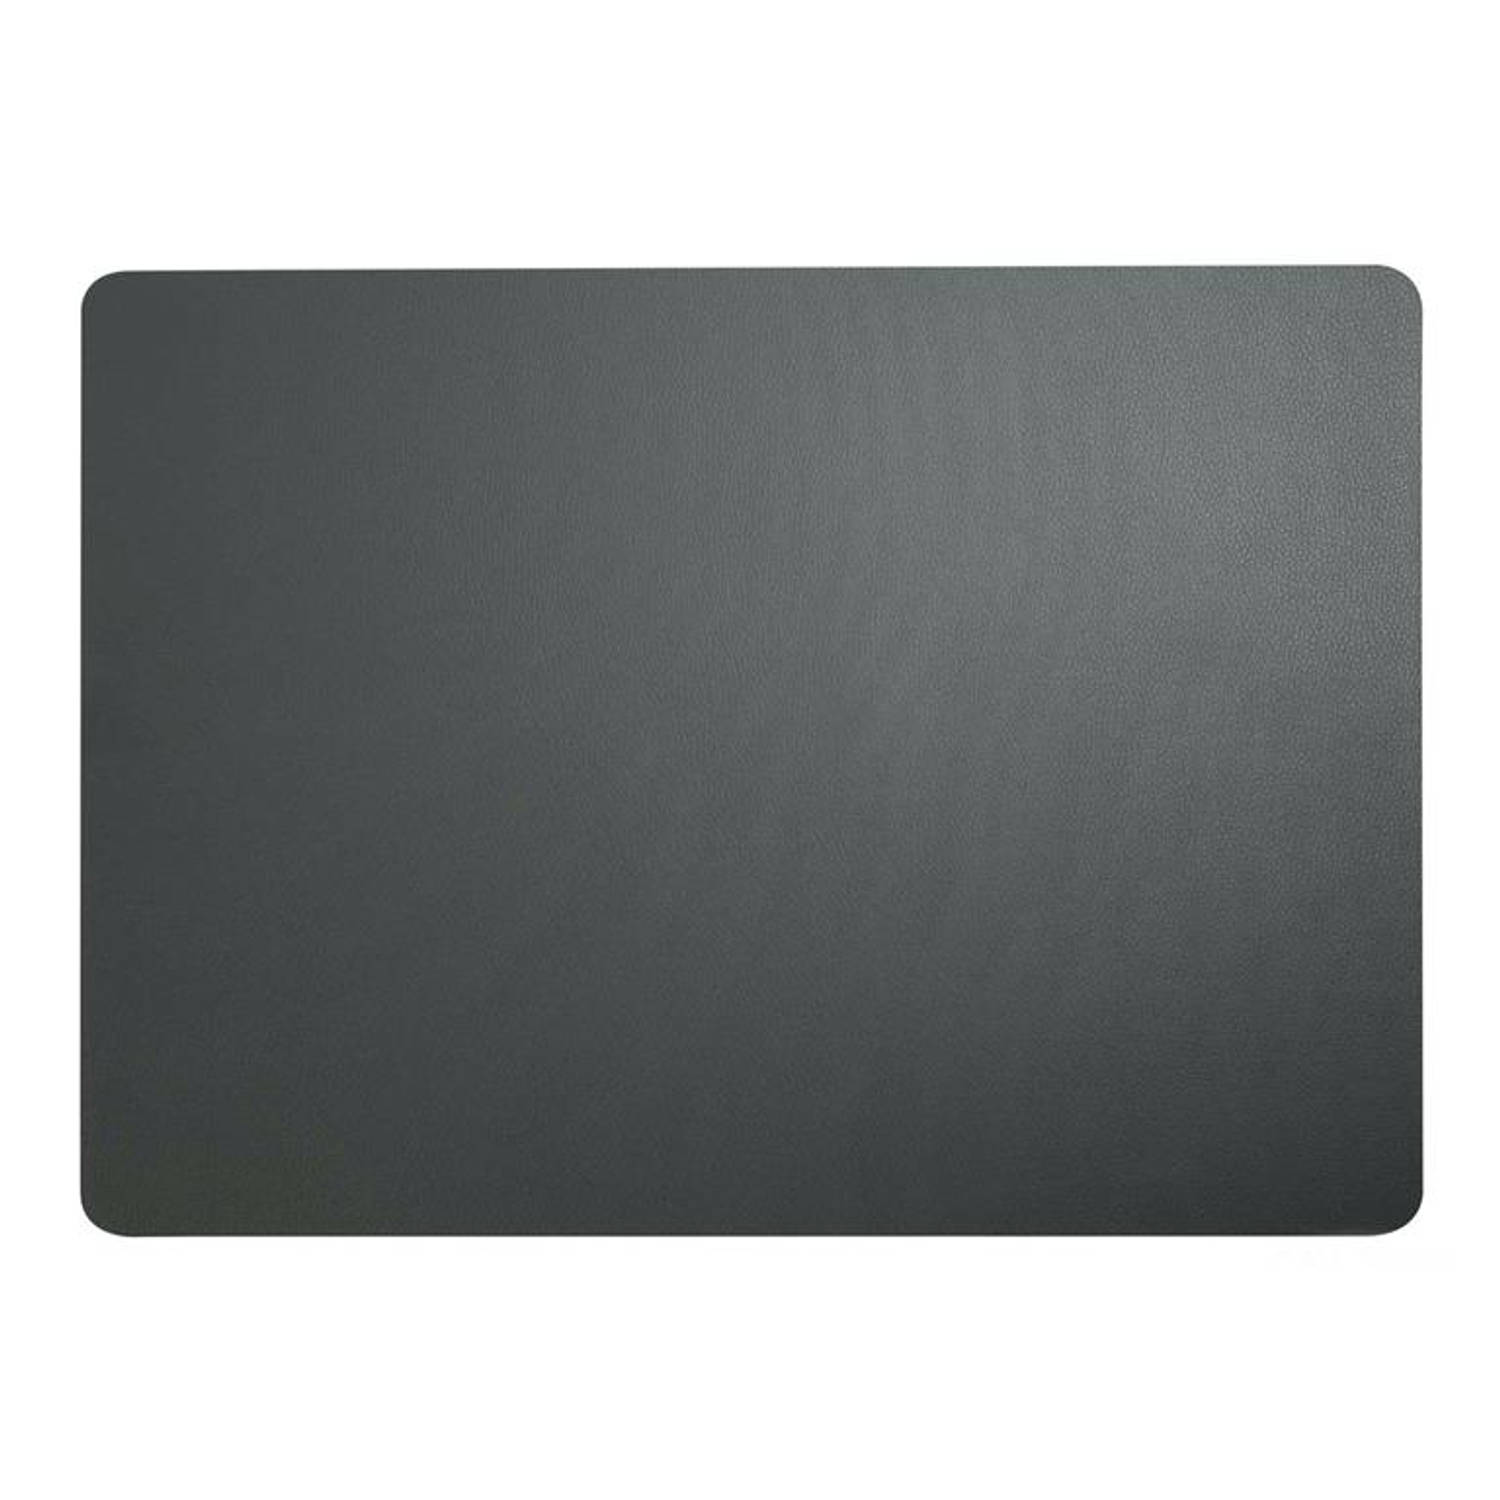 Korting Asa T Table Top Placemat 33x46cm Basalt Leather